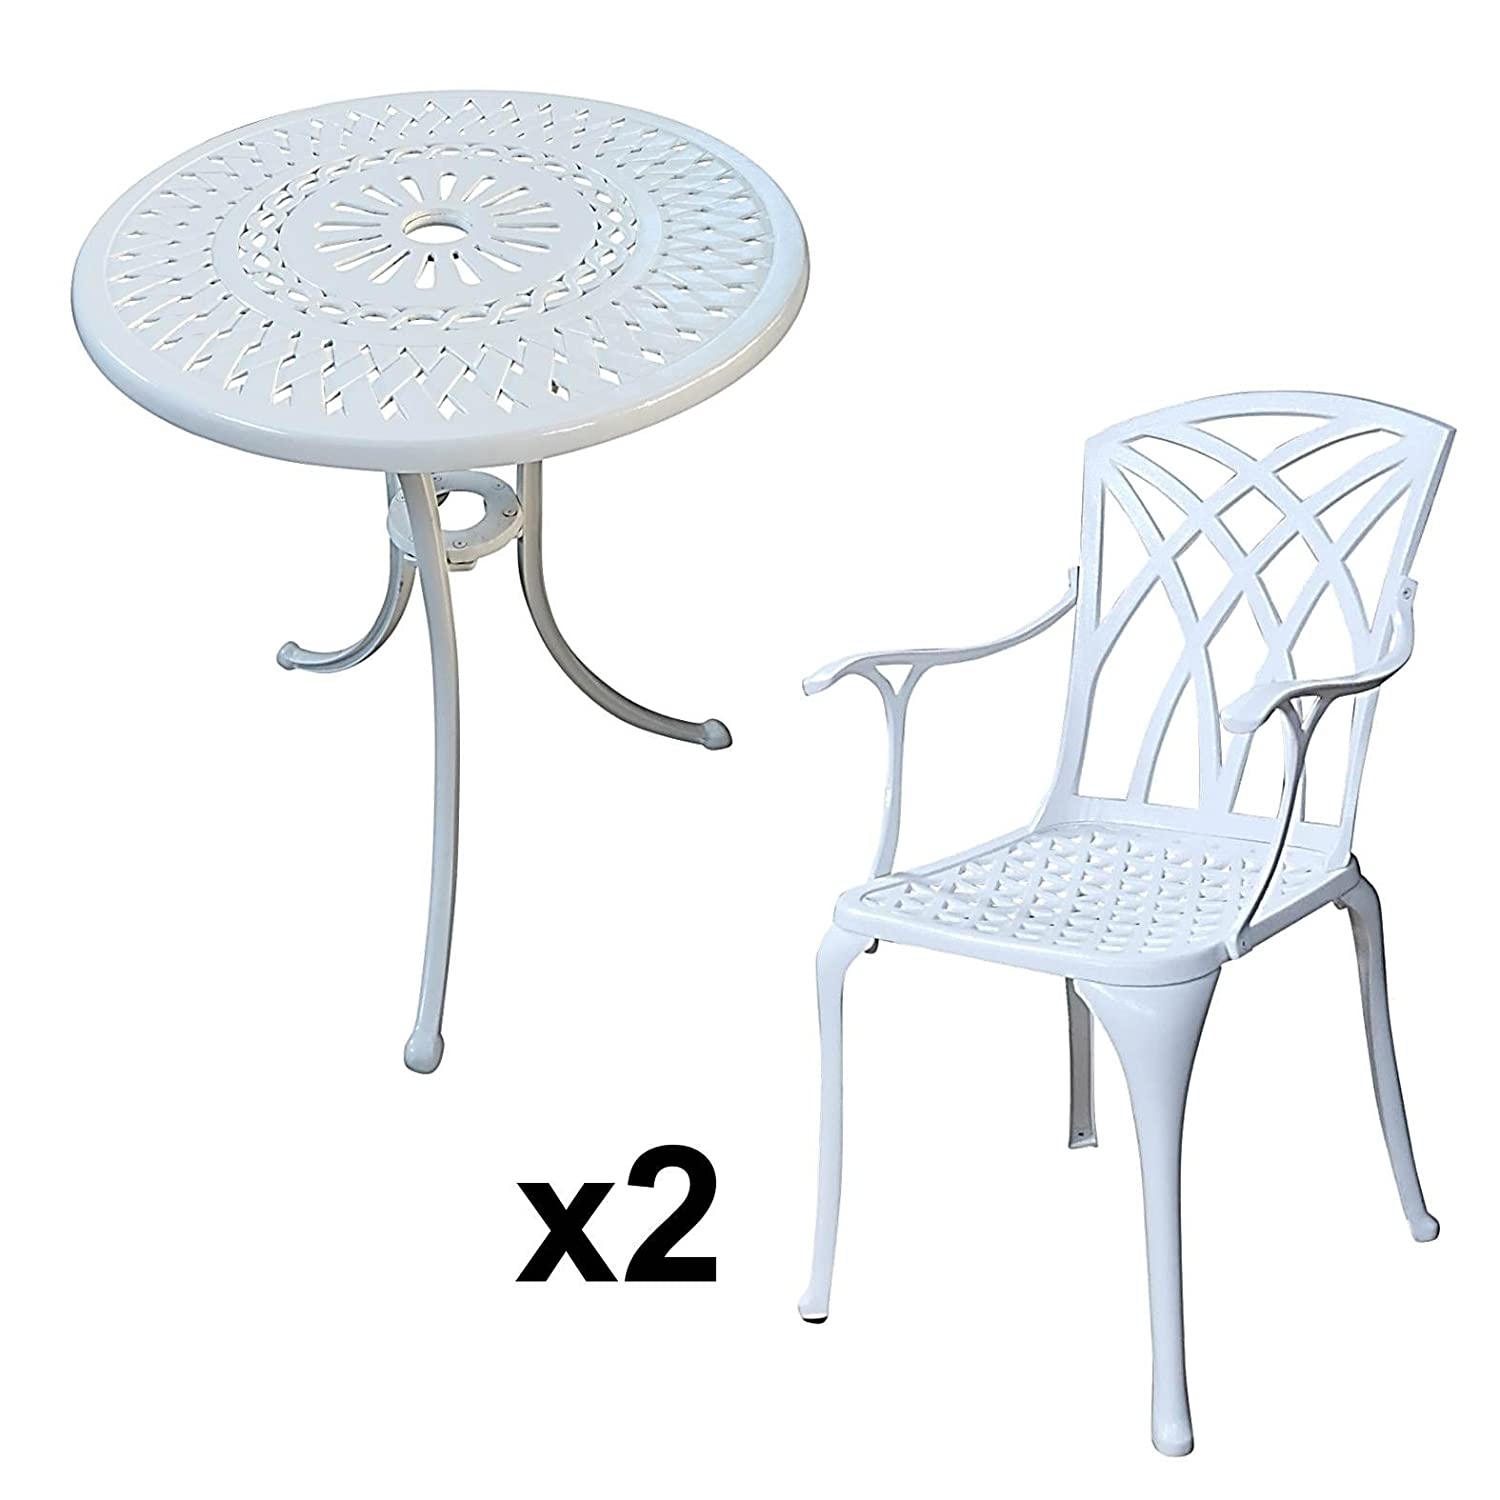 lazy susan eve 60 cm bistrotisch mit 2 st hlen rundes gartenm bel set aus metall wei. Black Bedroom Furniture Sets. Home Design Ideas